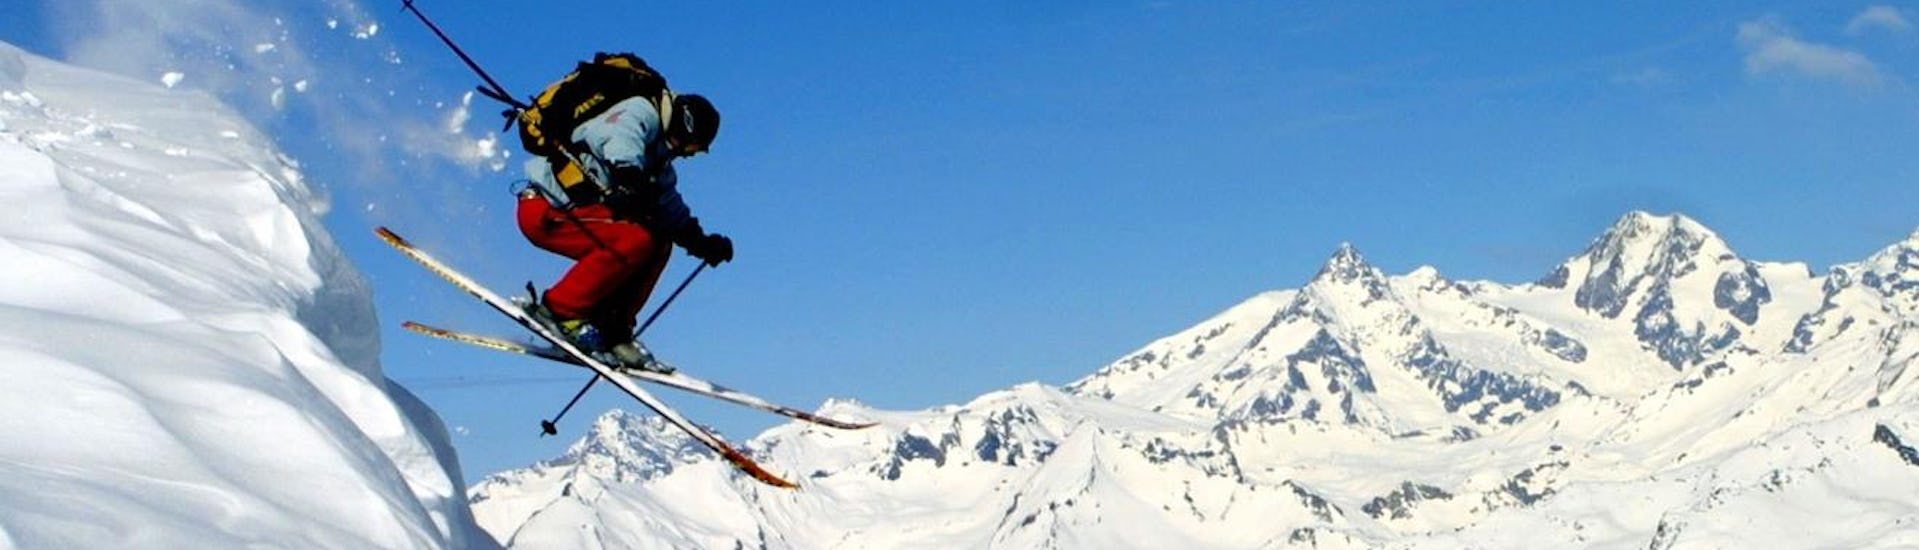 A skier is jumping during the Private Ski Lessons for Adults - All Levels from the ski school Snocool.